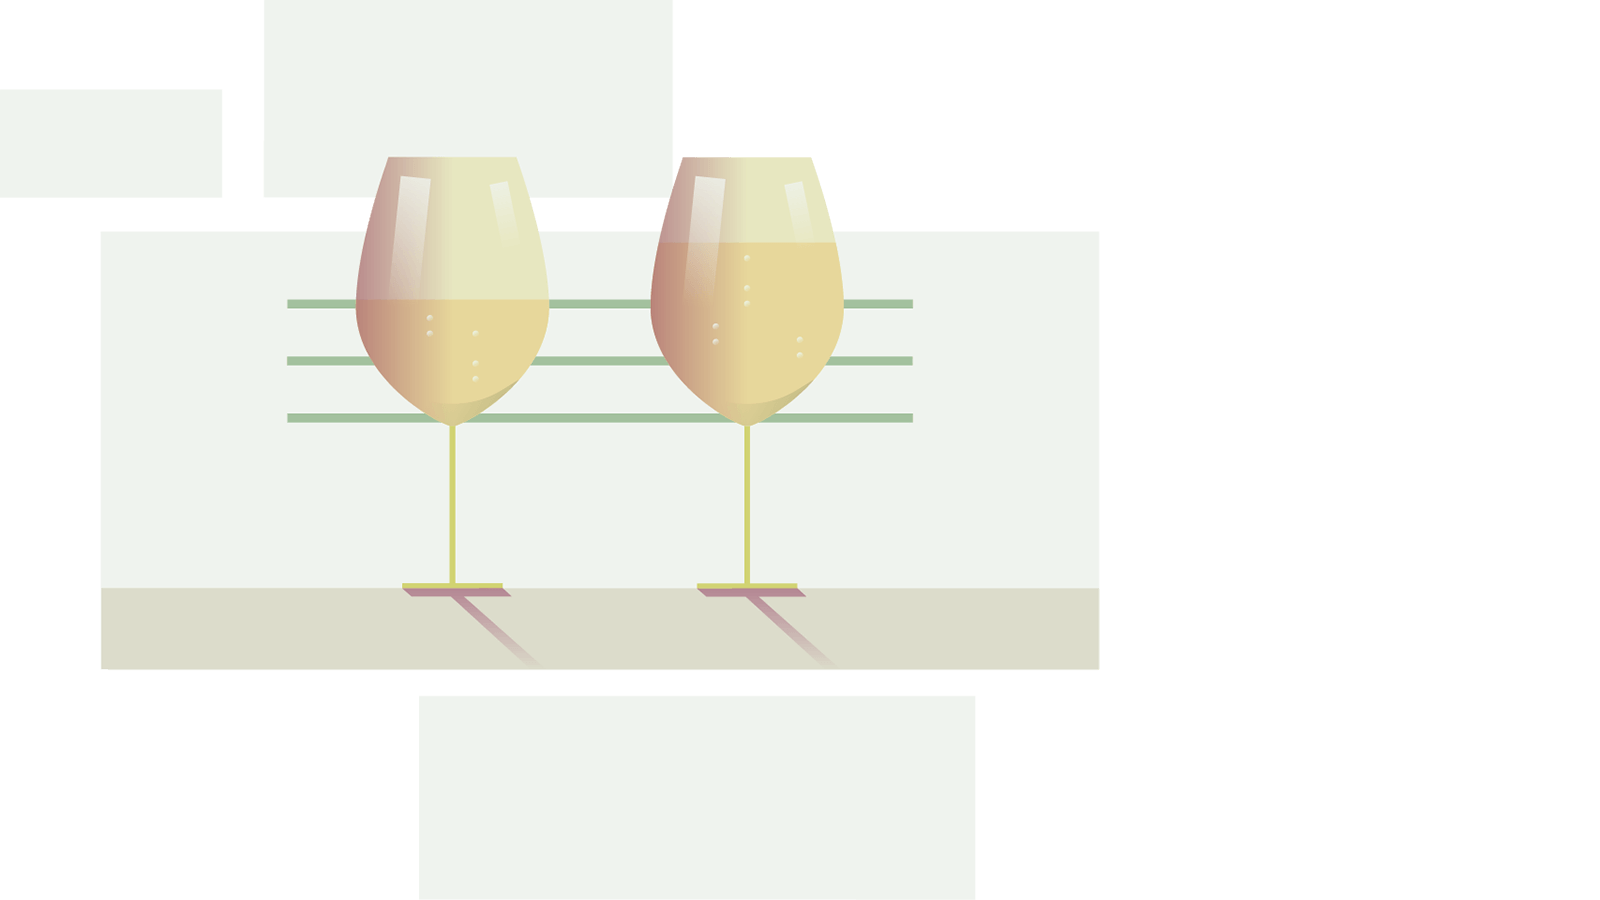 Graphic image of two wine glasses. One with a small wine serving and the other with a large wine serving.